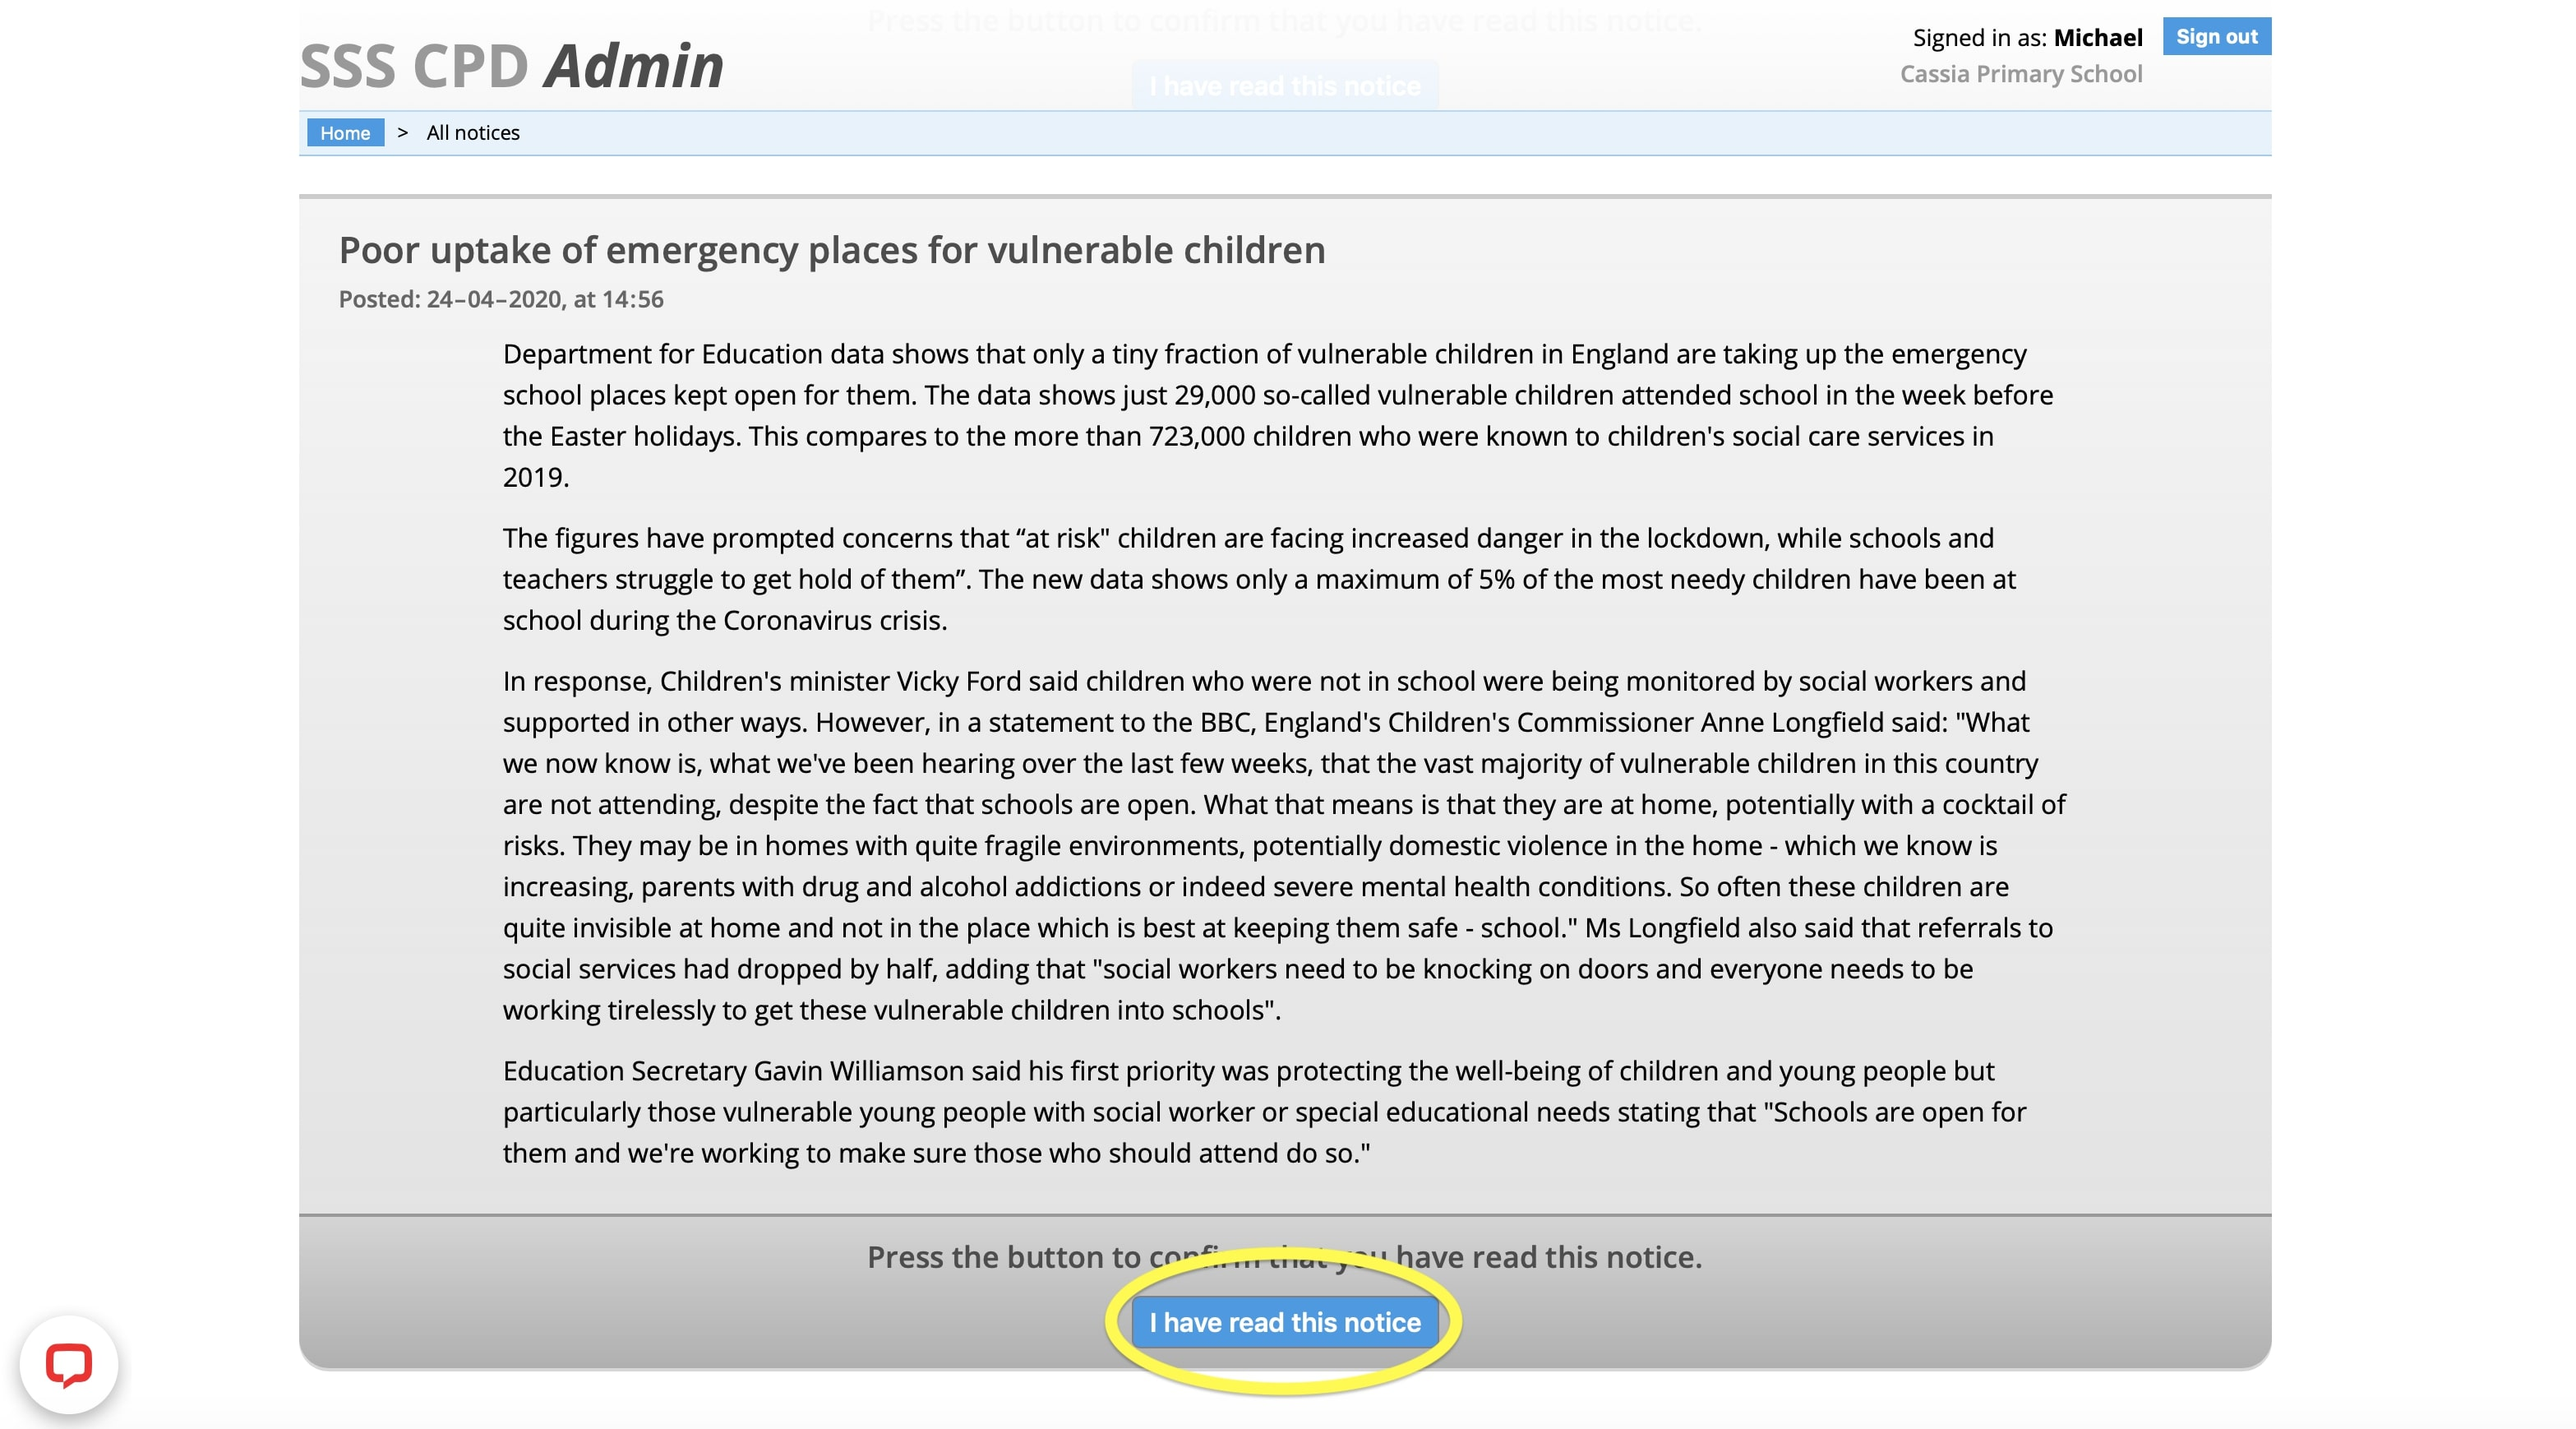 Admin Dashboard - I have read this safeguarding notice